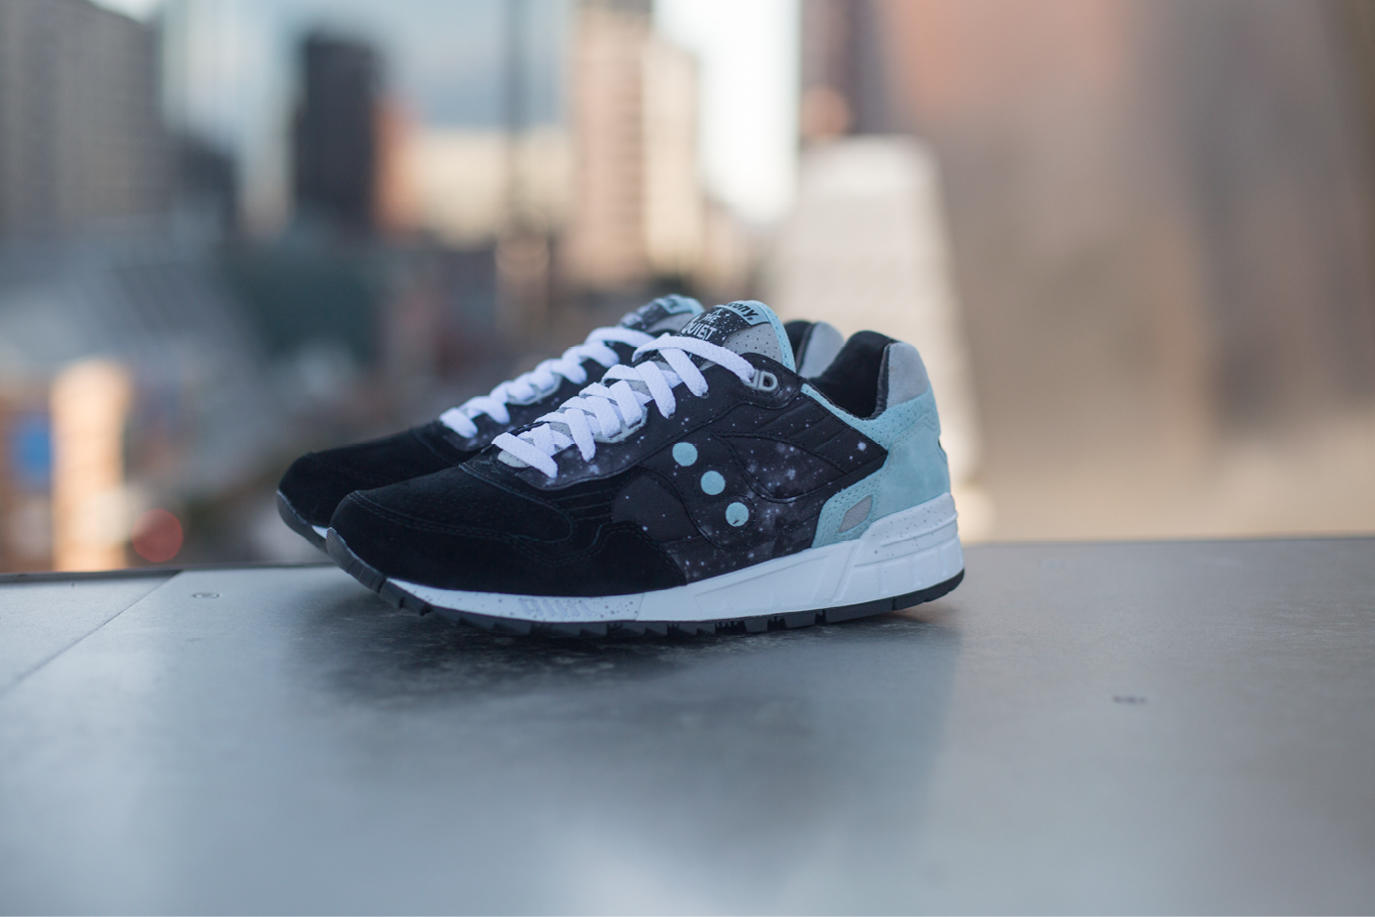 THE QUIET LIFE TEAMS UP WITH SAUCONY ON THE SHADOW 5000 6